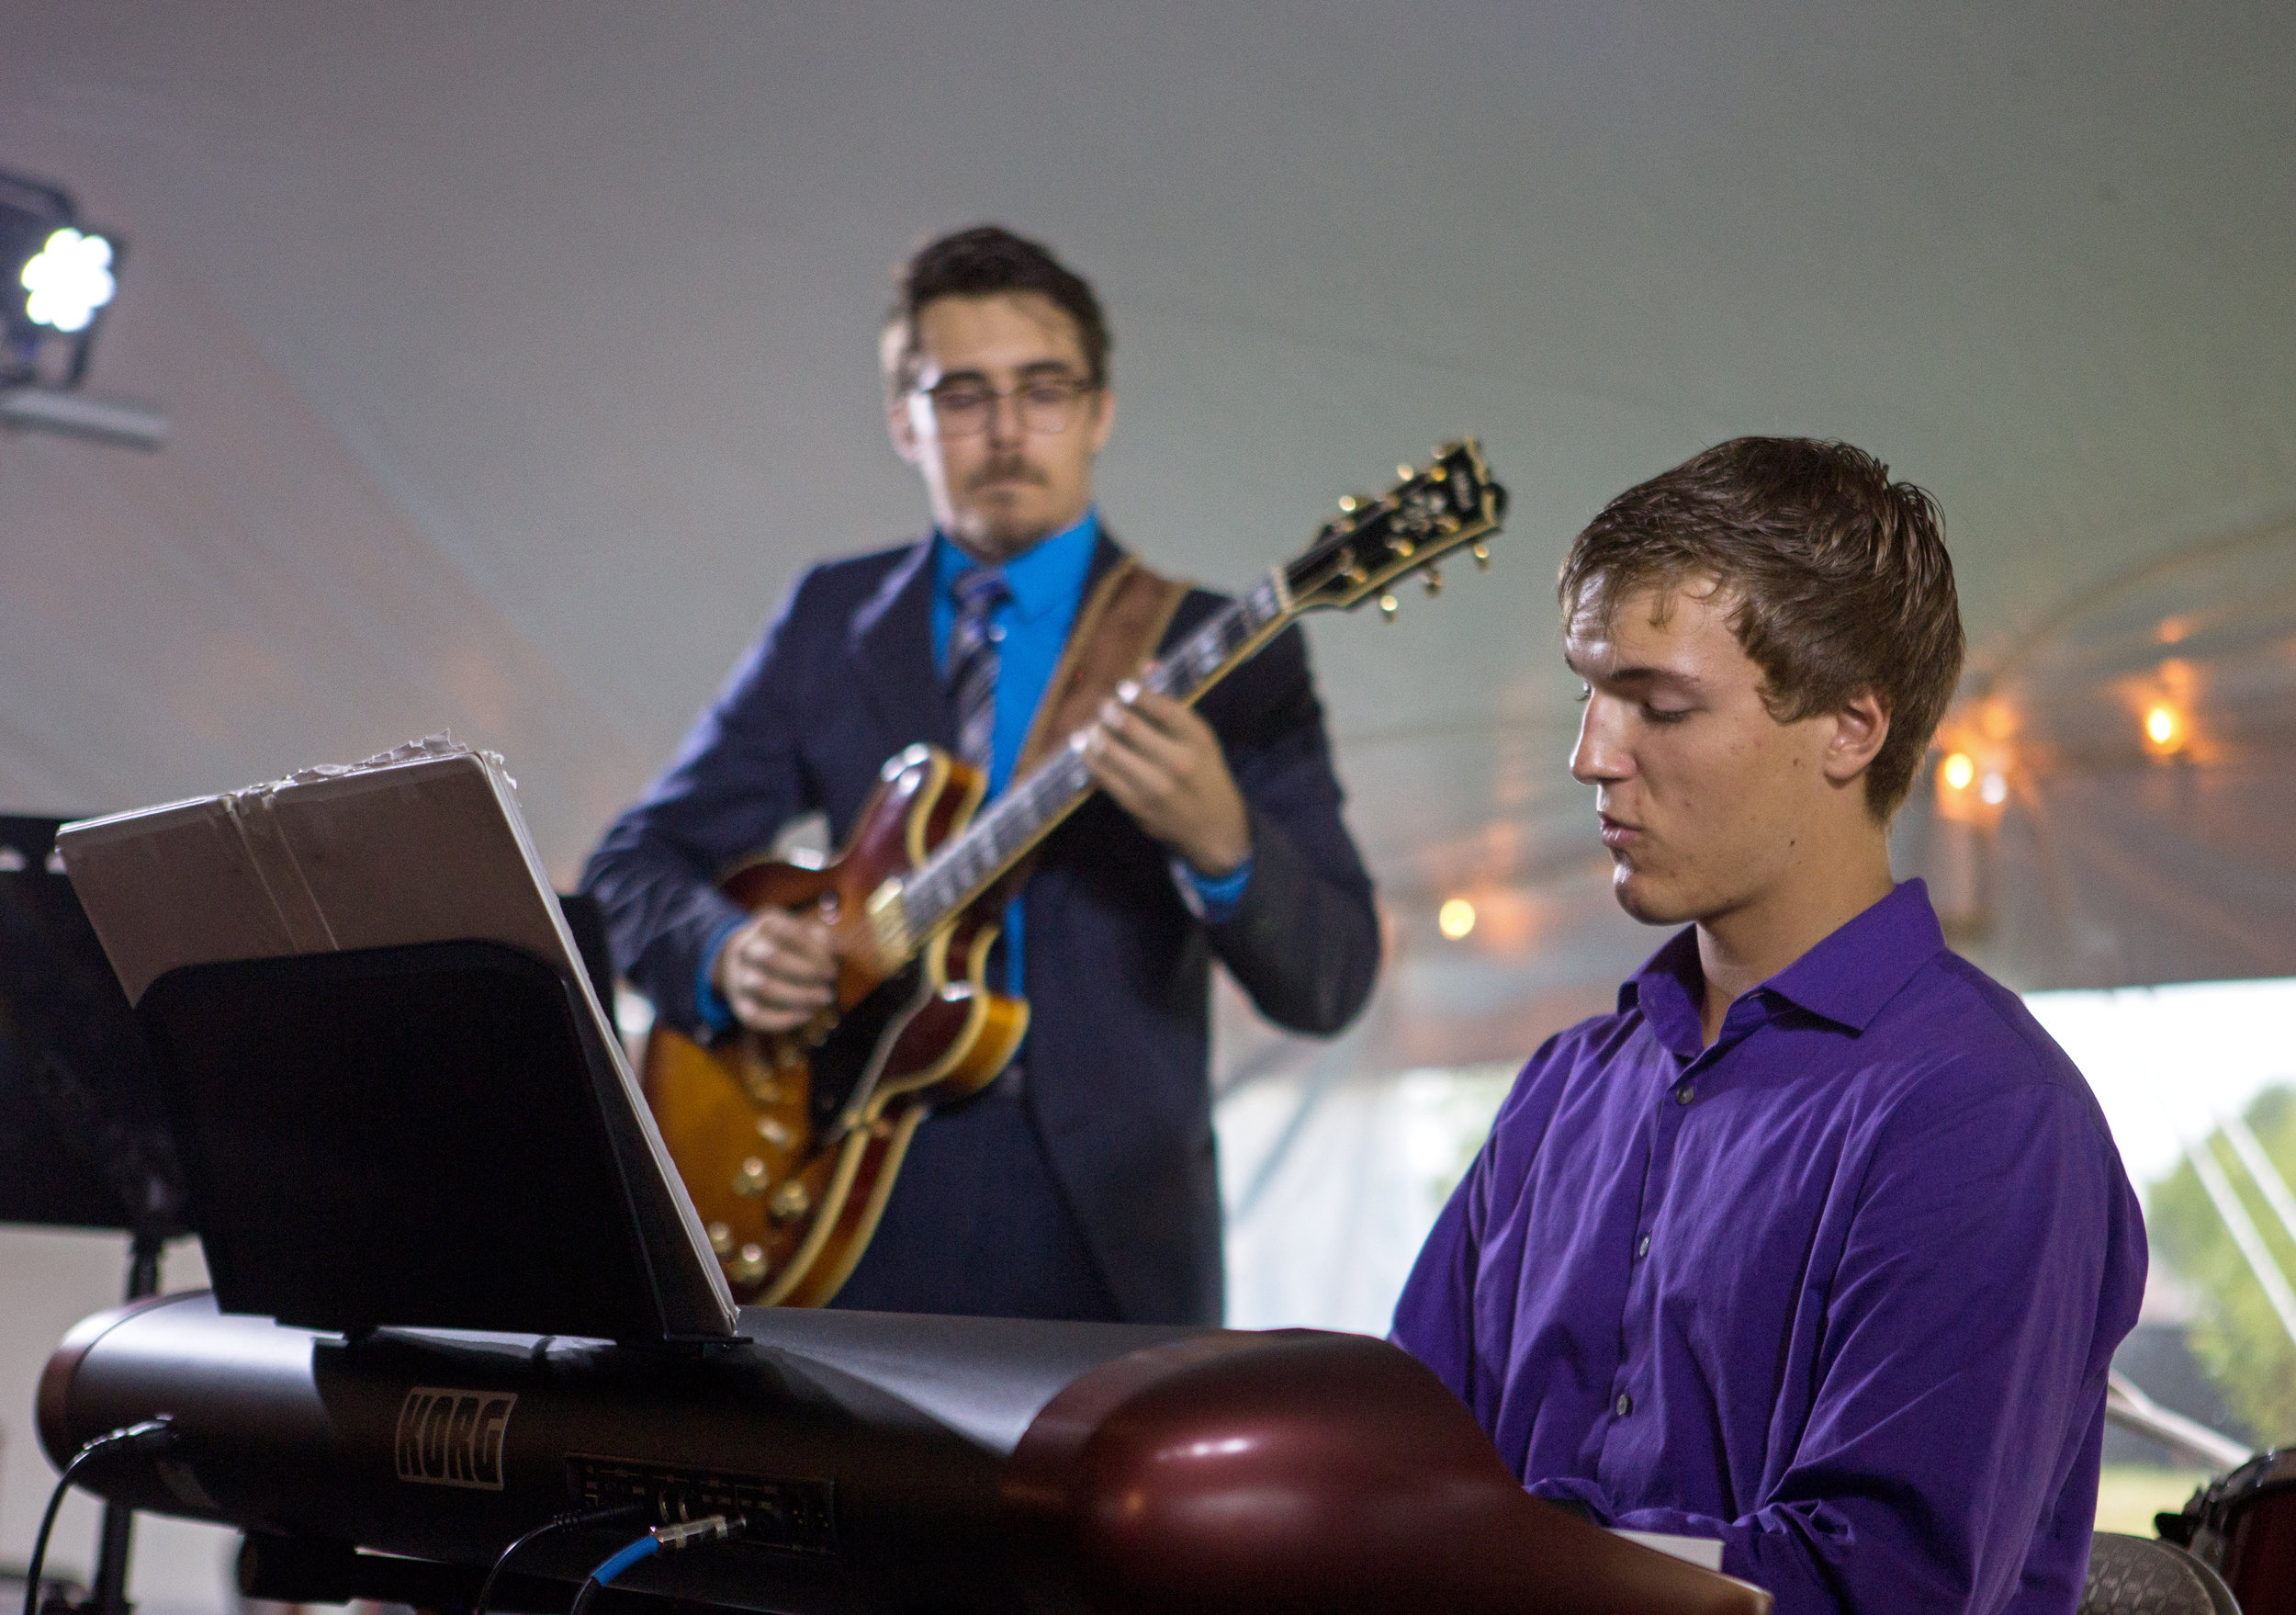 Toledo School for the Arts senior Ben Scheiber plays the keyboard with the Urban Jazz Collective during the opening of Middlegrounds Metropark in downtown Toledo on Saturday, Sept. 17, 2016.